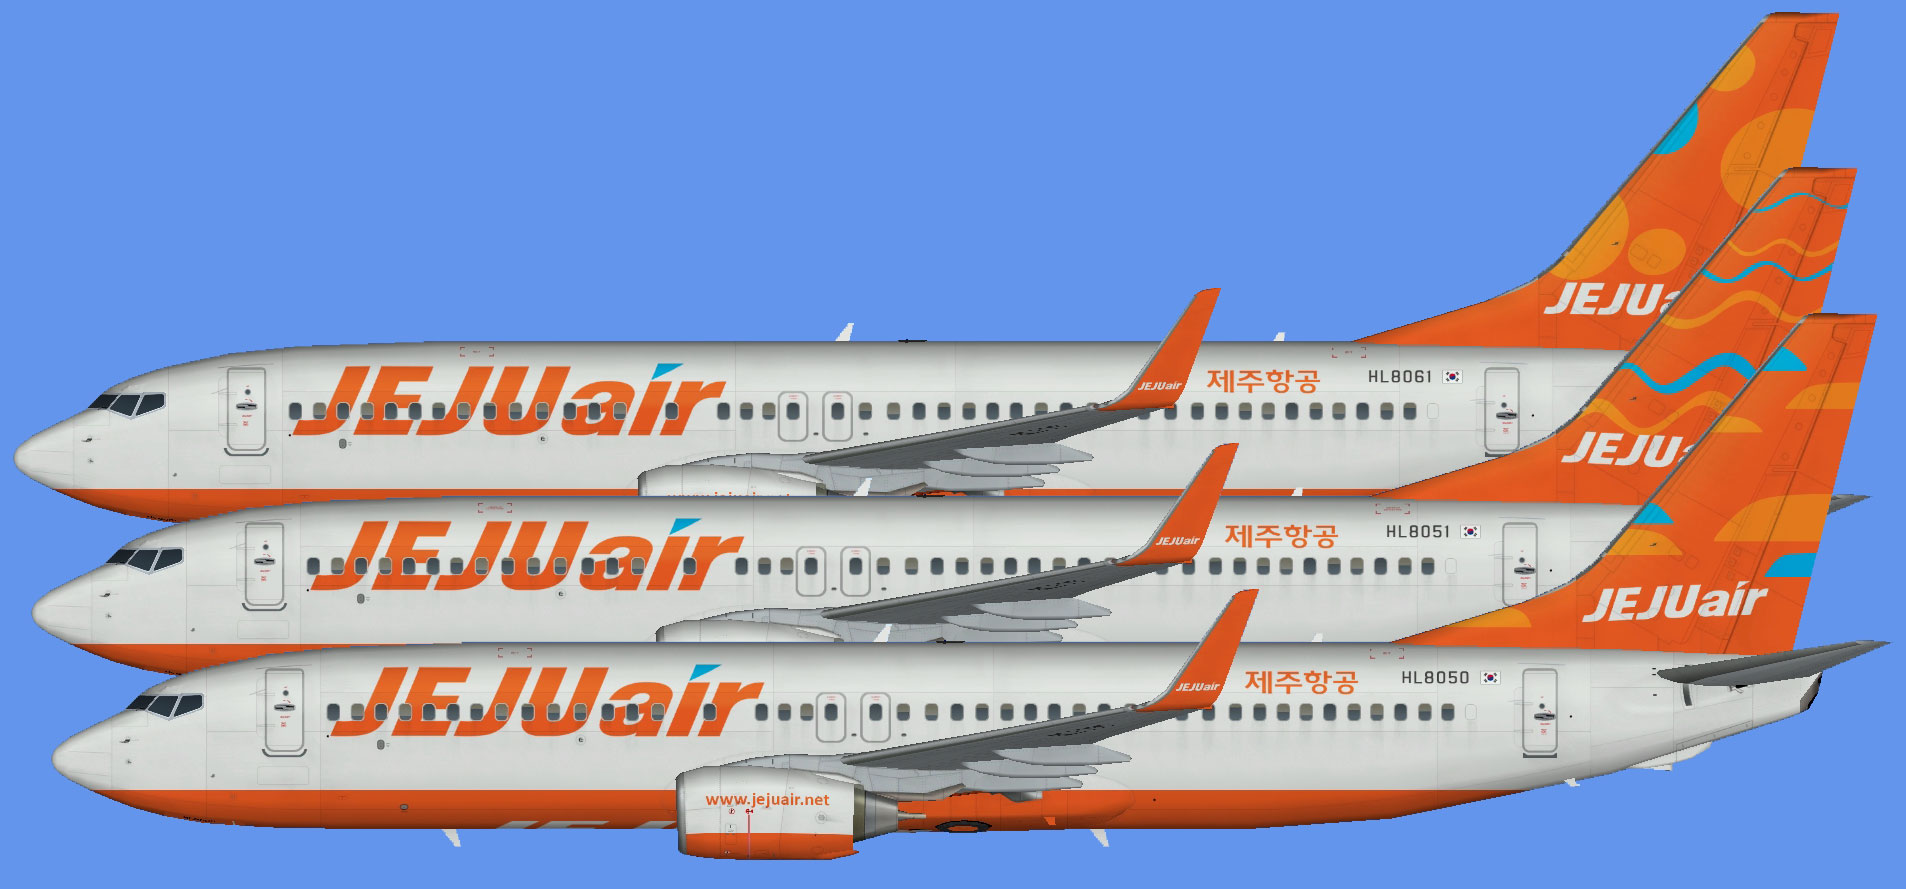 Jeju Air 737-800 (winglets)